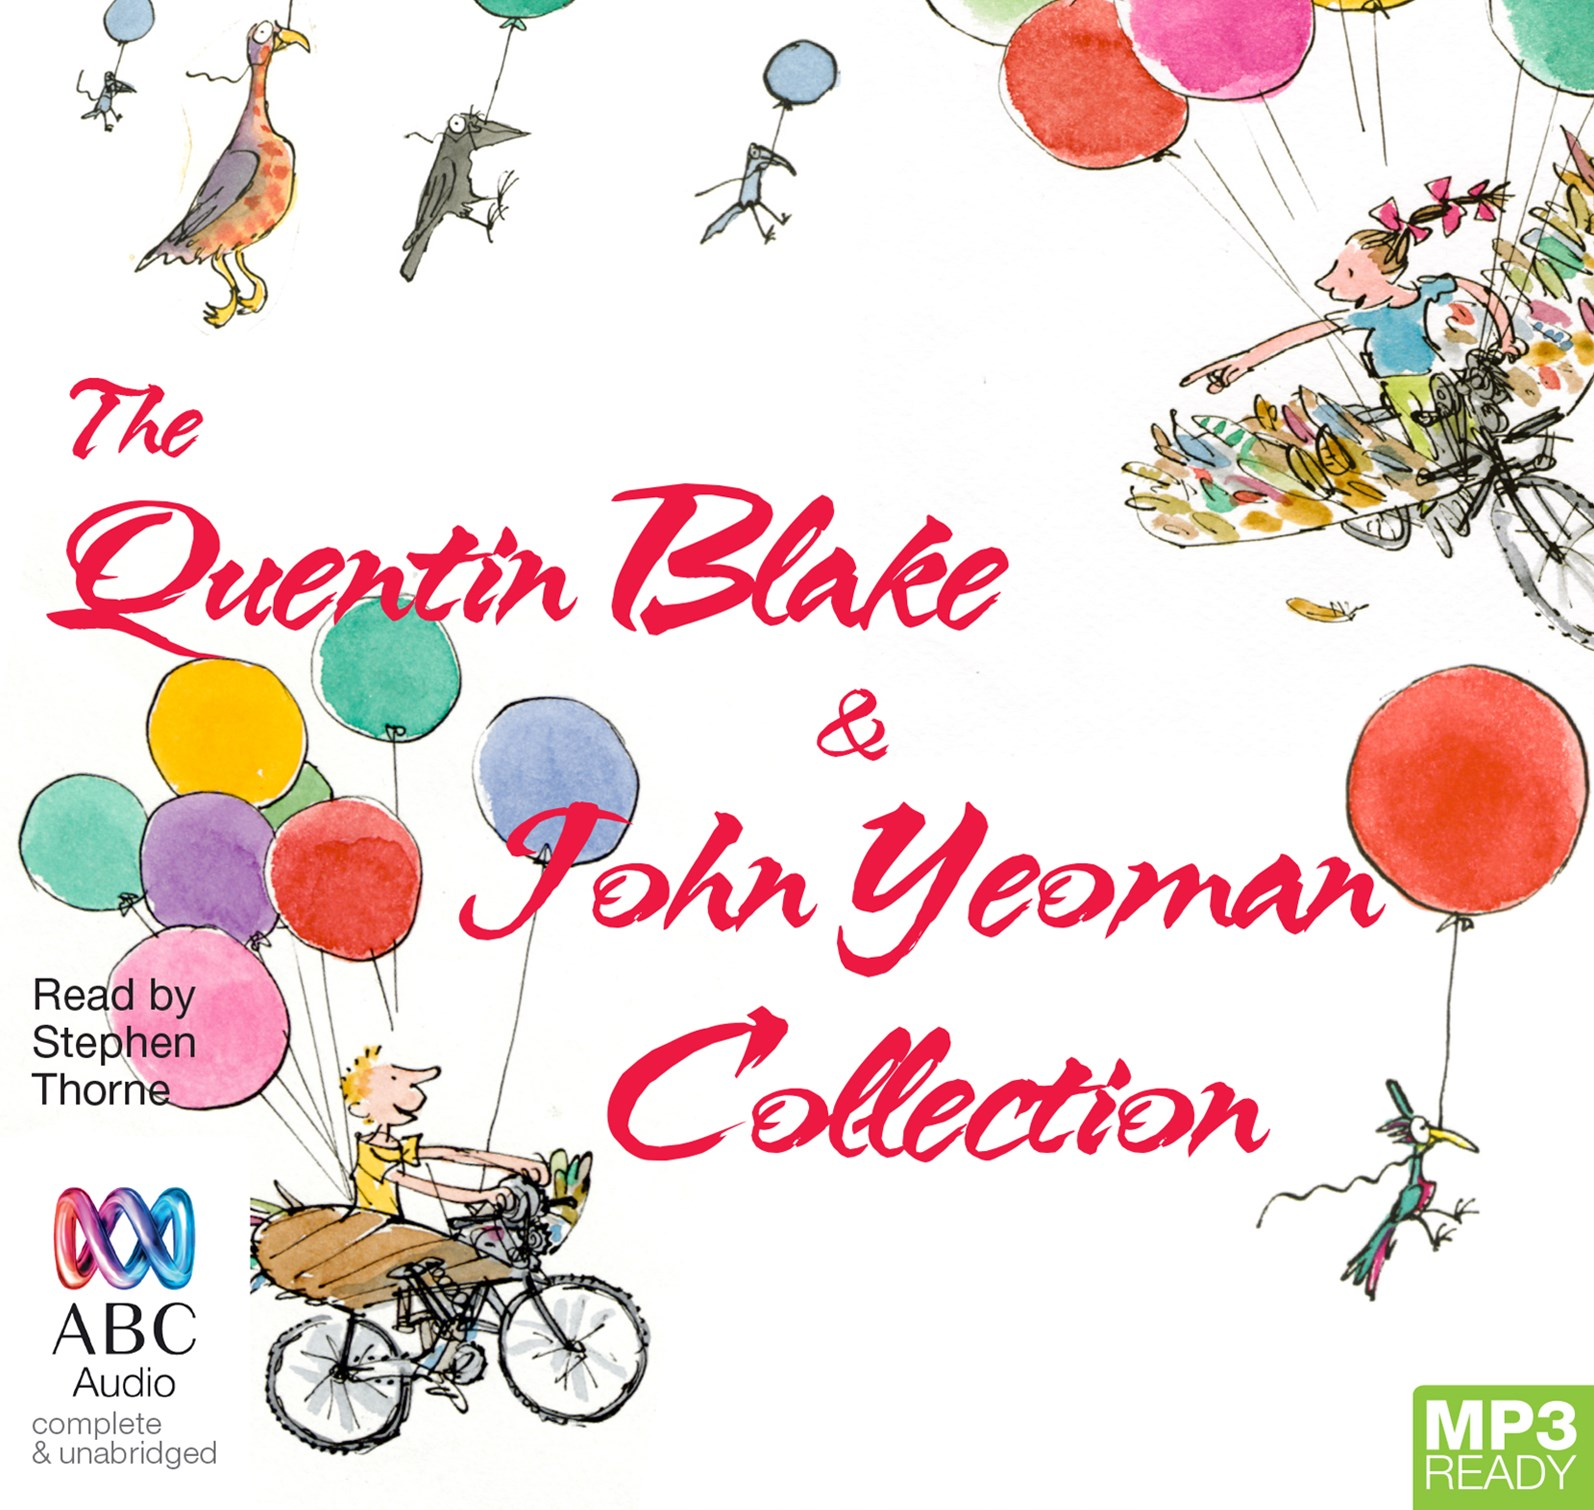 QUENTIN BLAKE & JOHN YEOMAN COLLECTION M